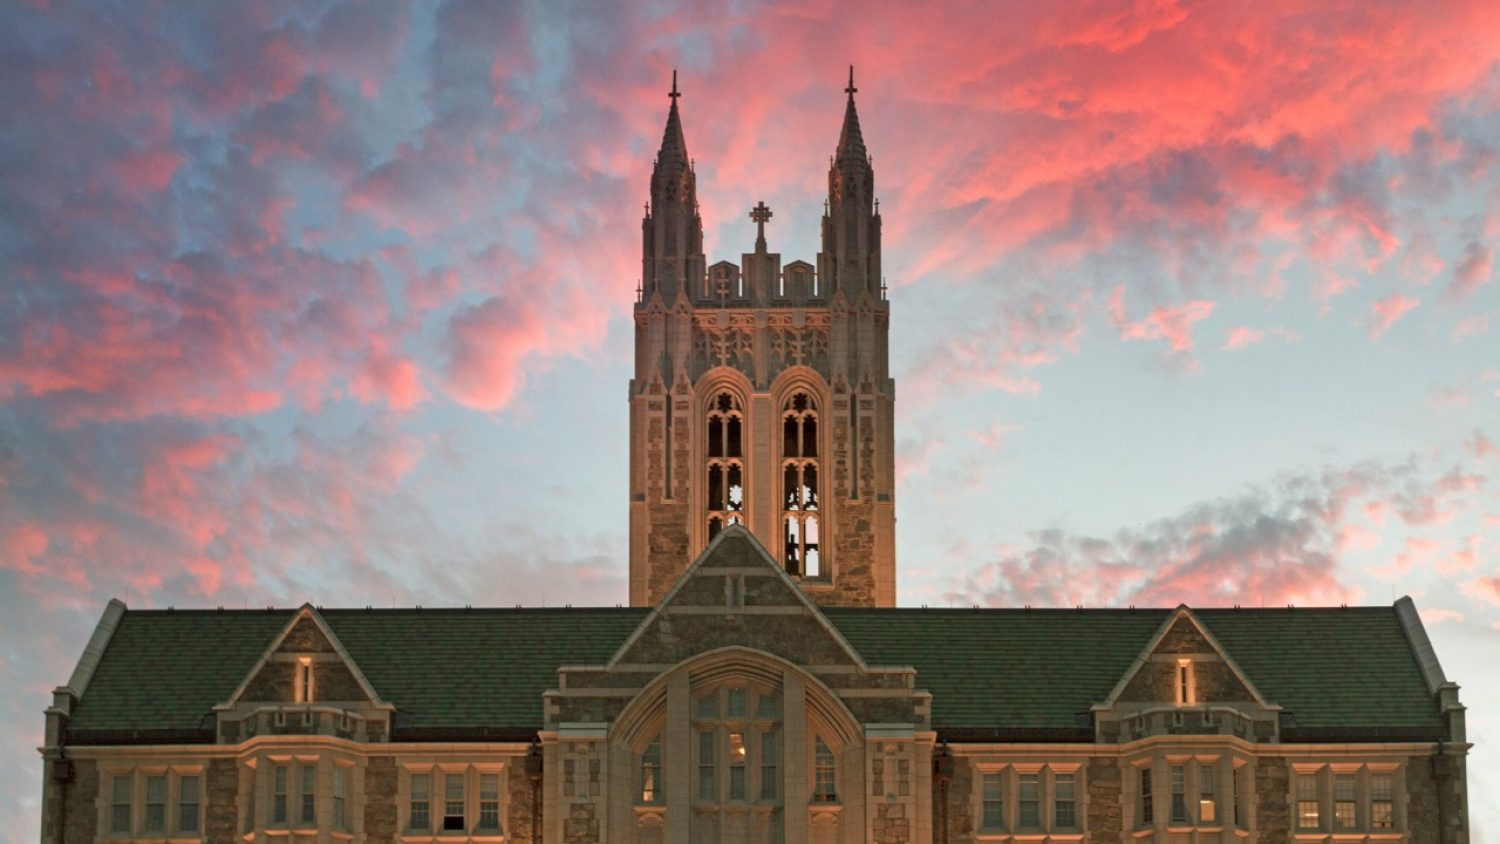 Gasson Hall at sunset